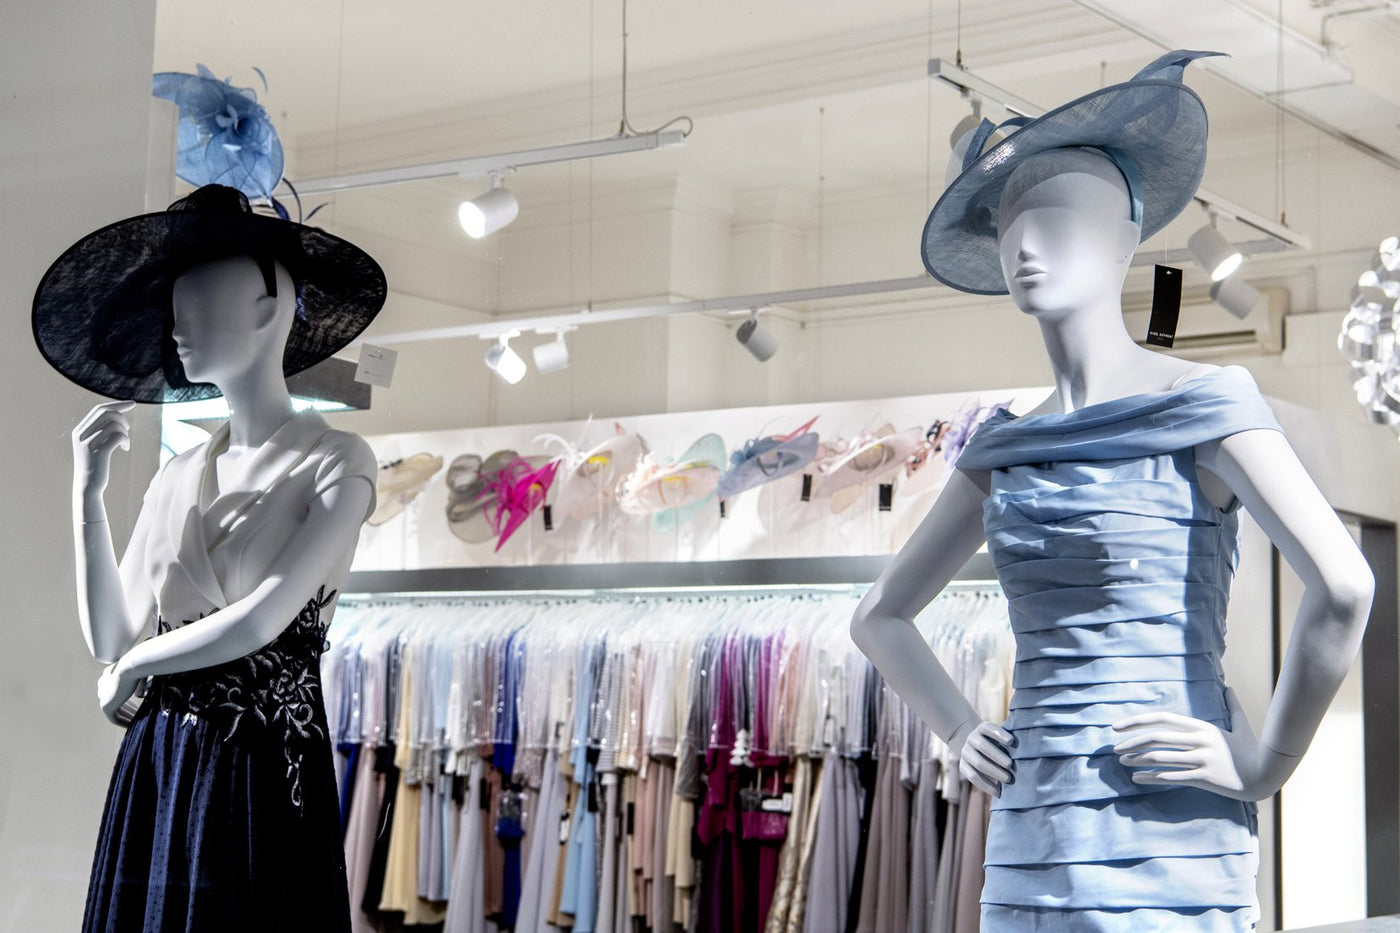 Now available - Nigel Rayment's latest collection of hats & fascinators